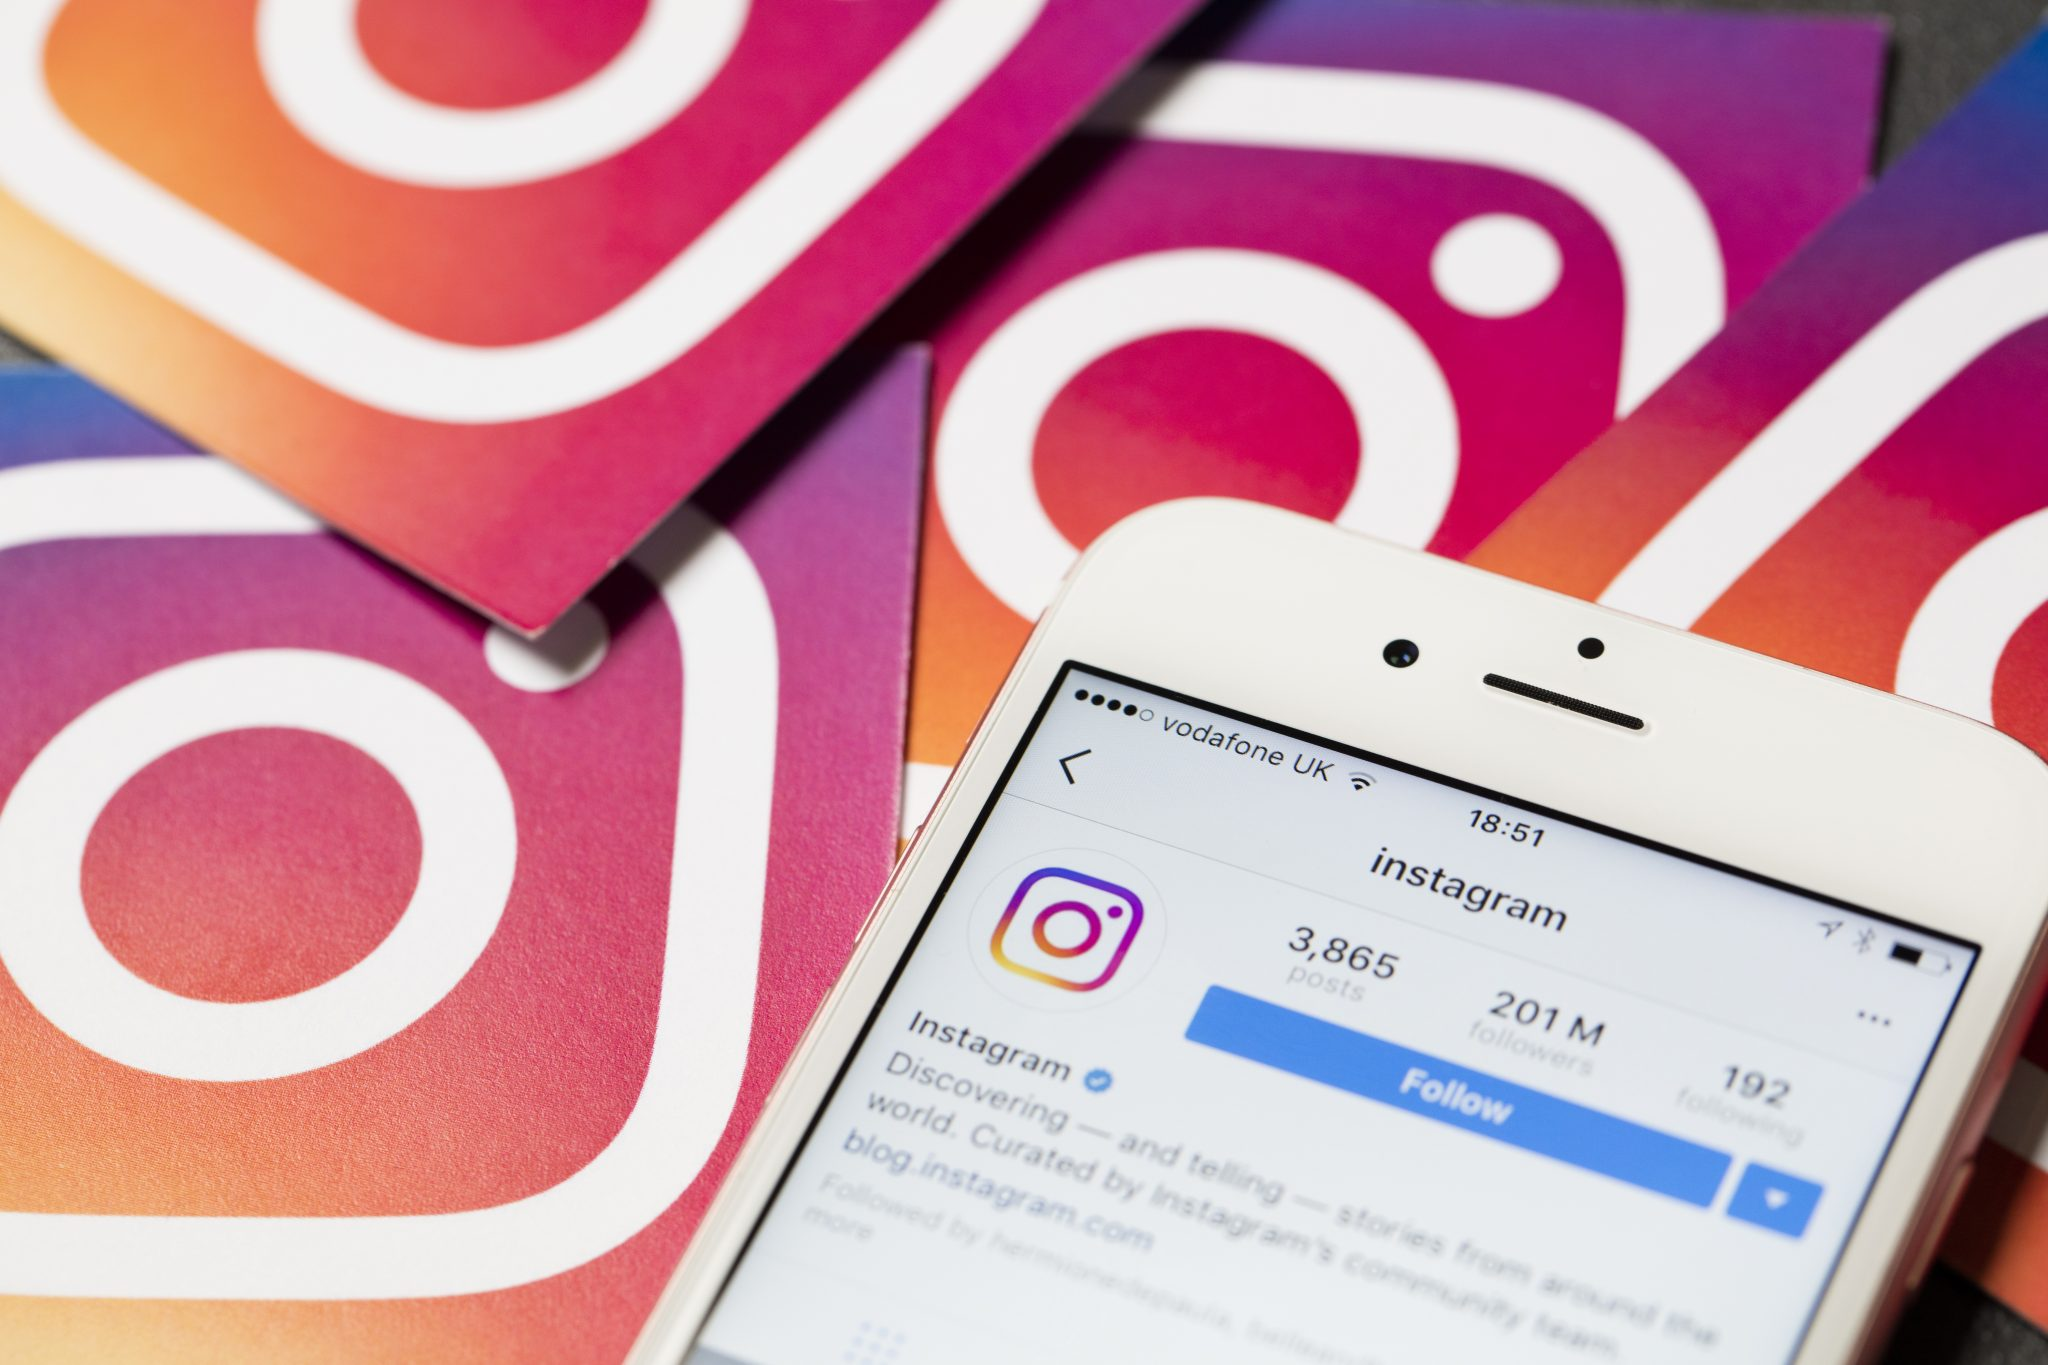 Way to success: how to use Instagram in right way